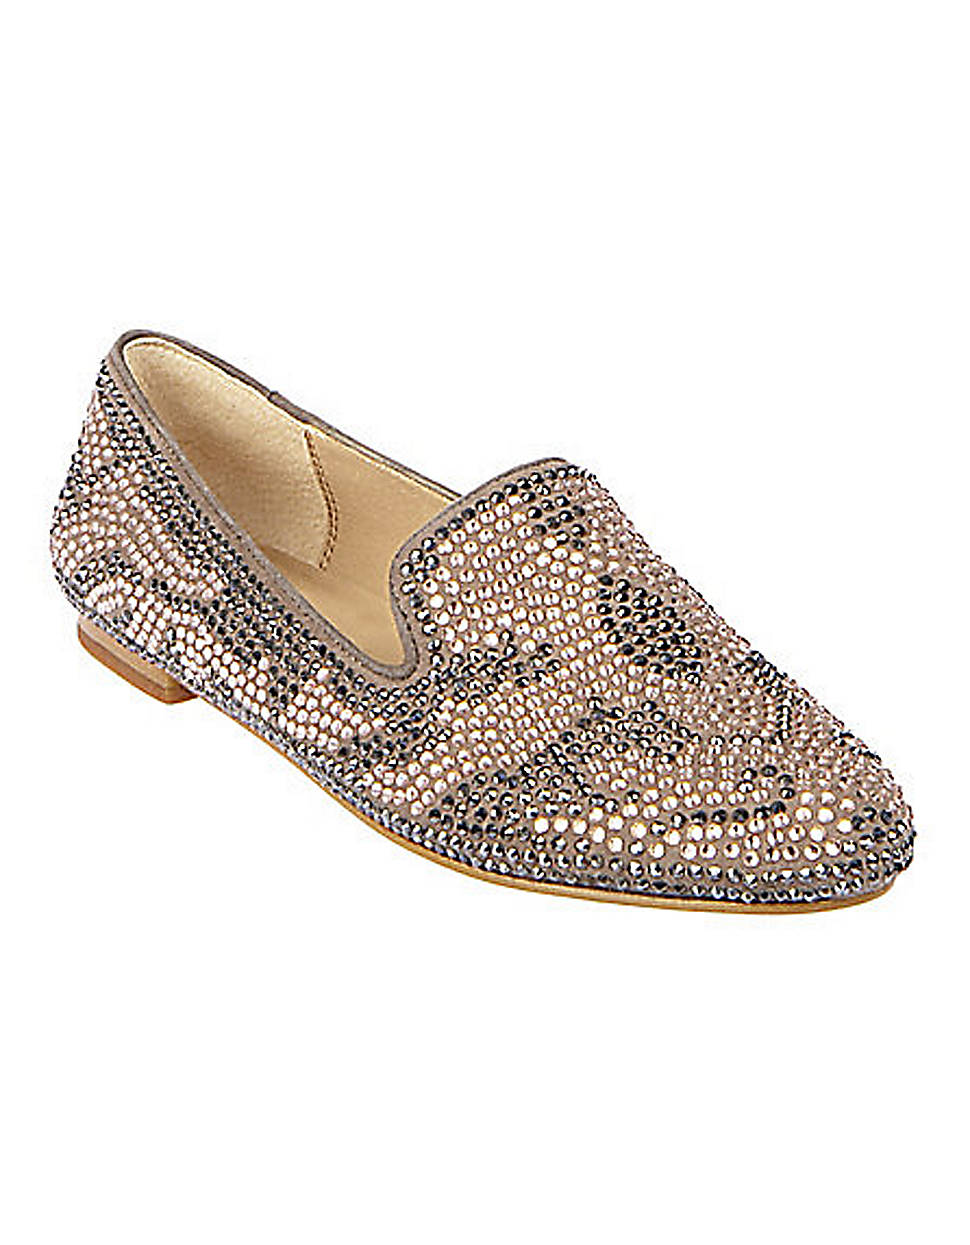 083f9177716 Steve Madden Conncord Beaded Flats in Natural - Lyst